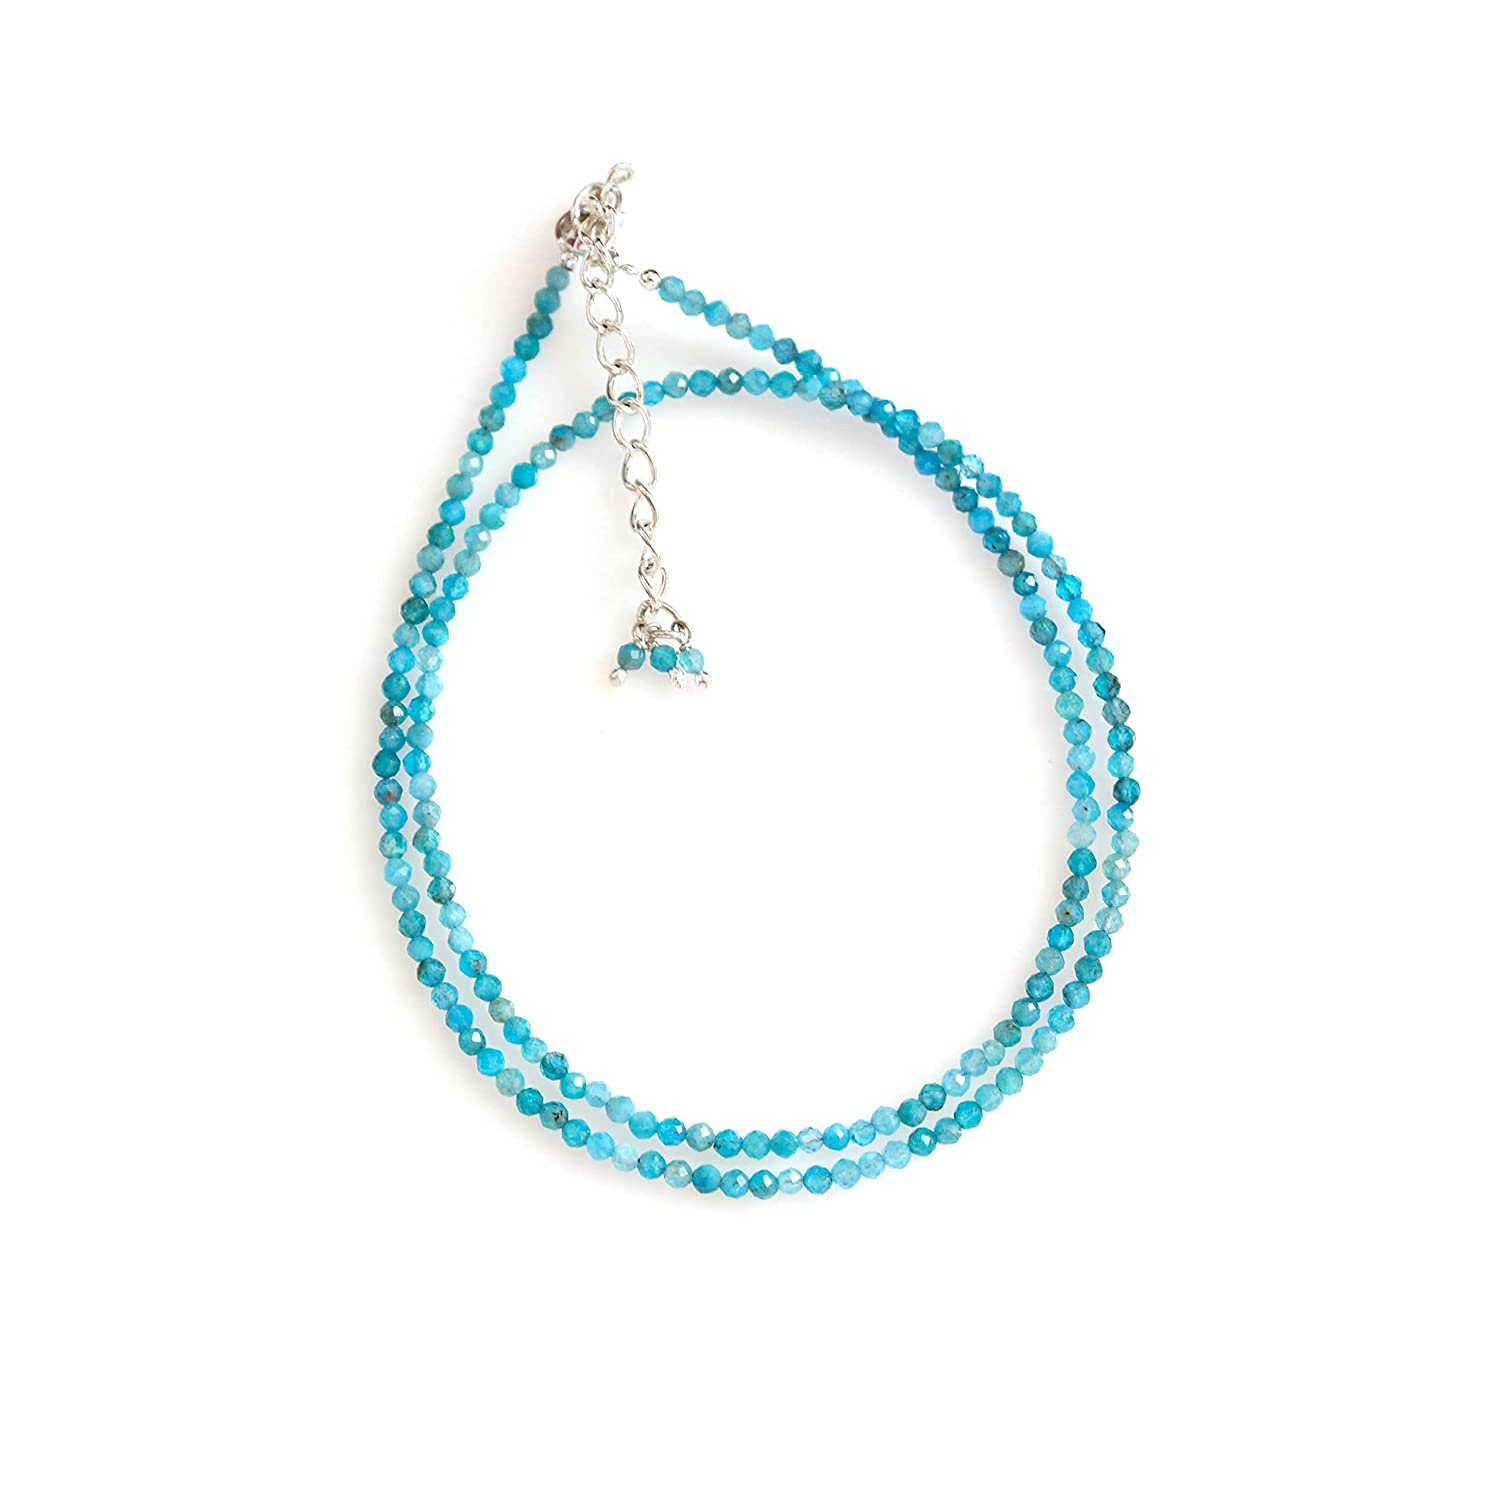 Gempires Don't miss the campaign Natural Neon Apatite Ene Necklace discount Faceted Beads